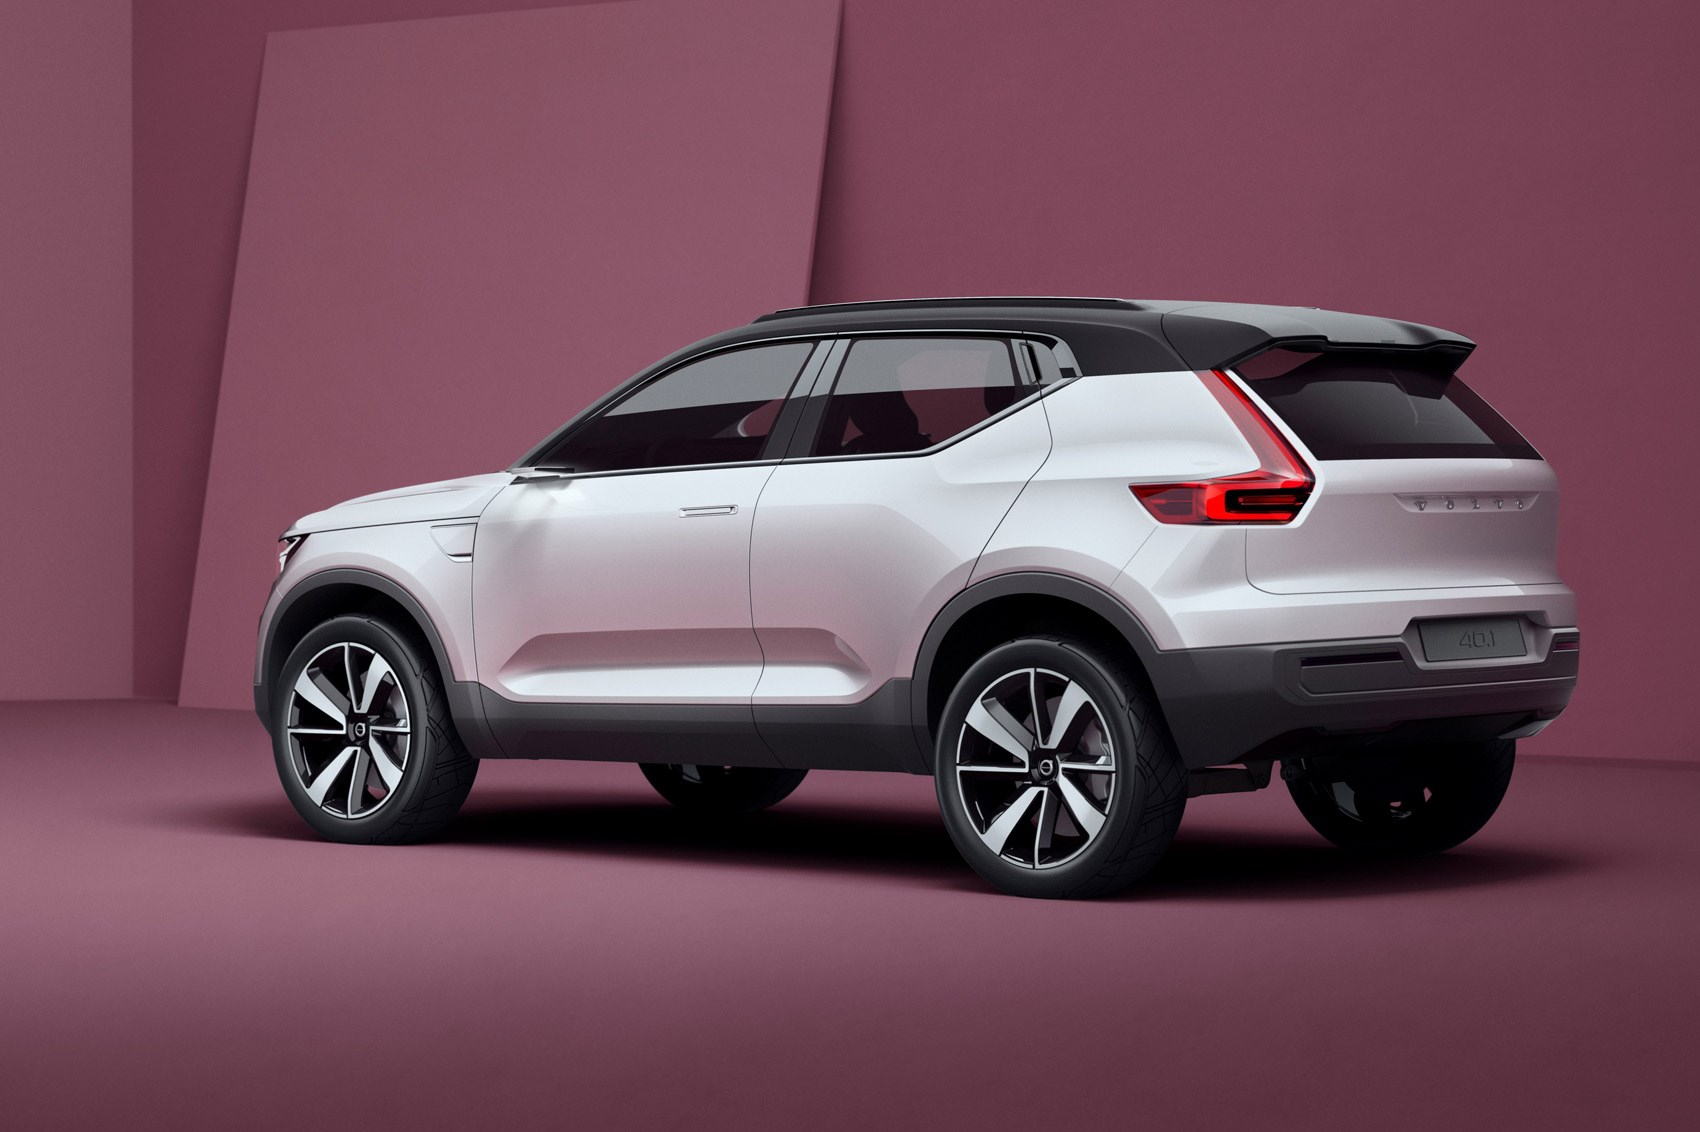 Volvo Suv Models >> Volvo Previews New 40 Series Models With Double Concept Car